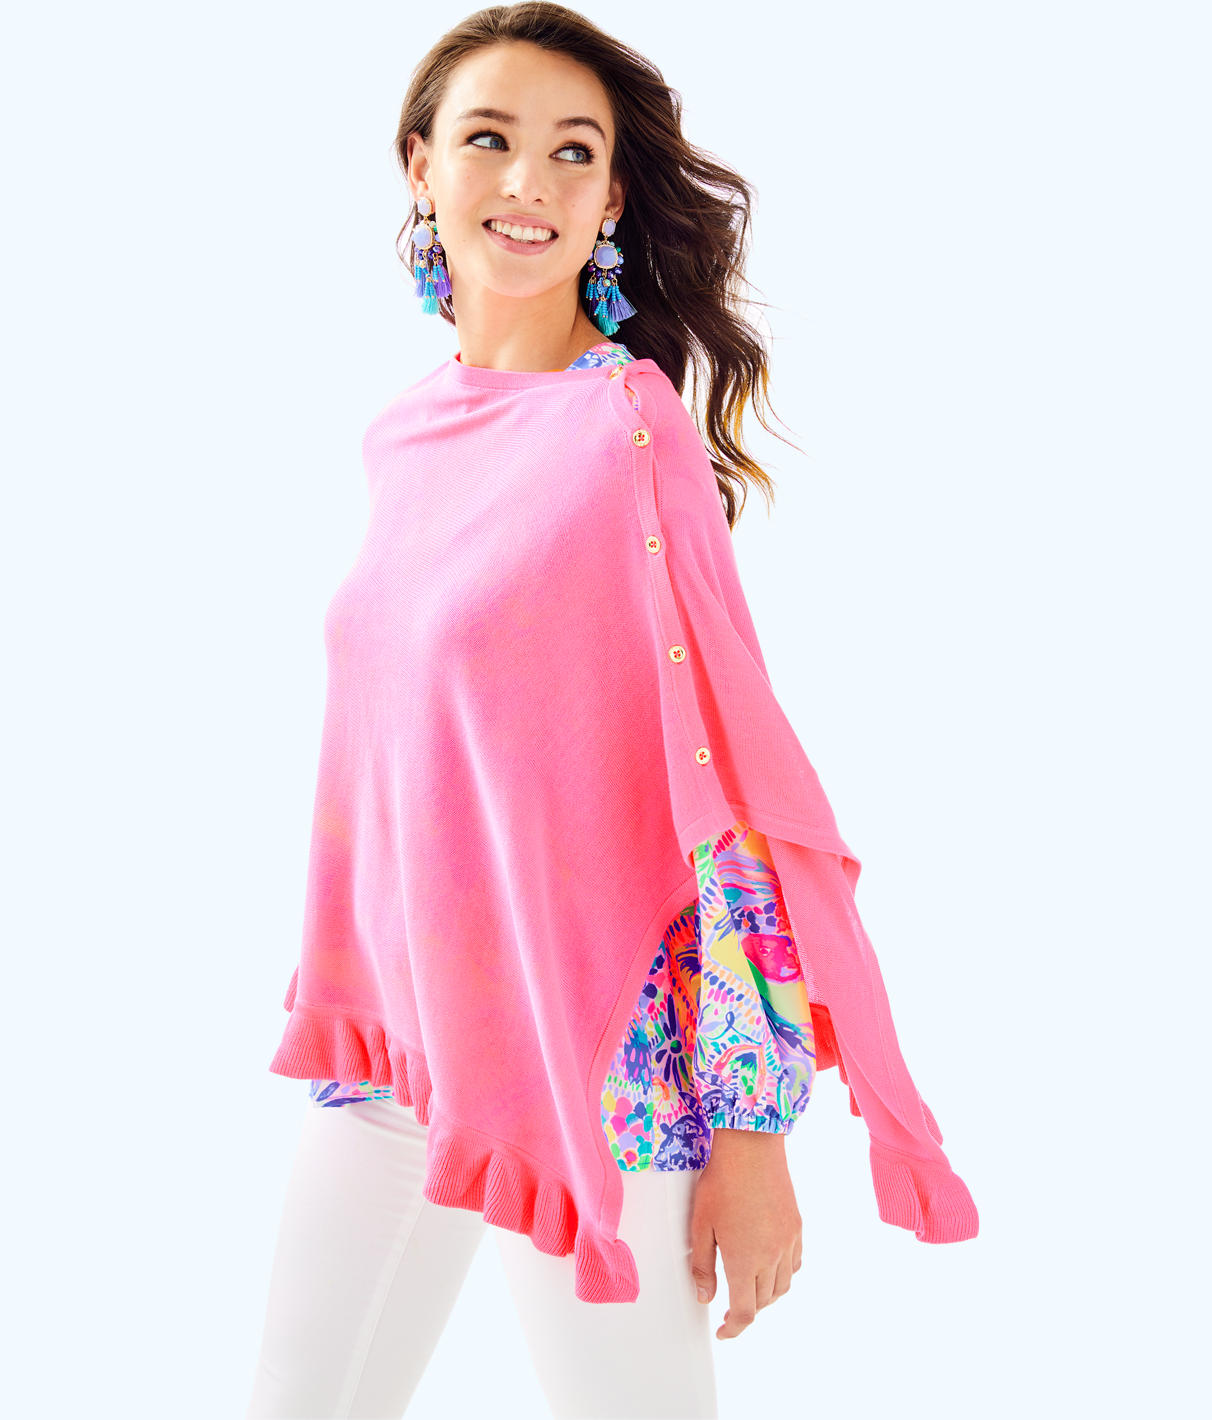 Lilly Pulitzer Lilly Pulitzer Womens Valiente Wrap